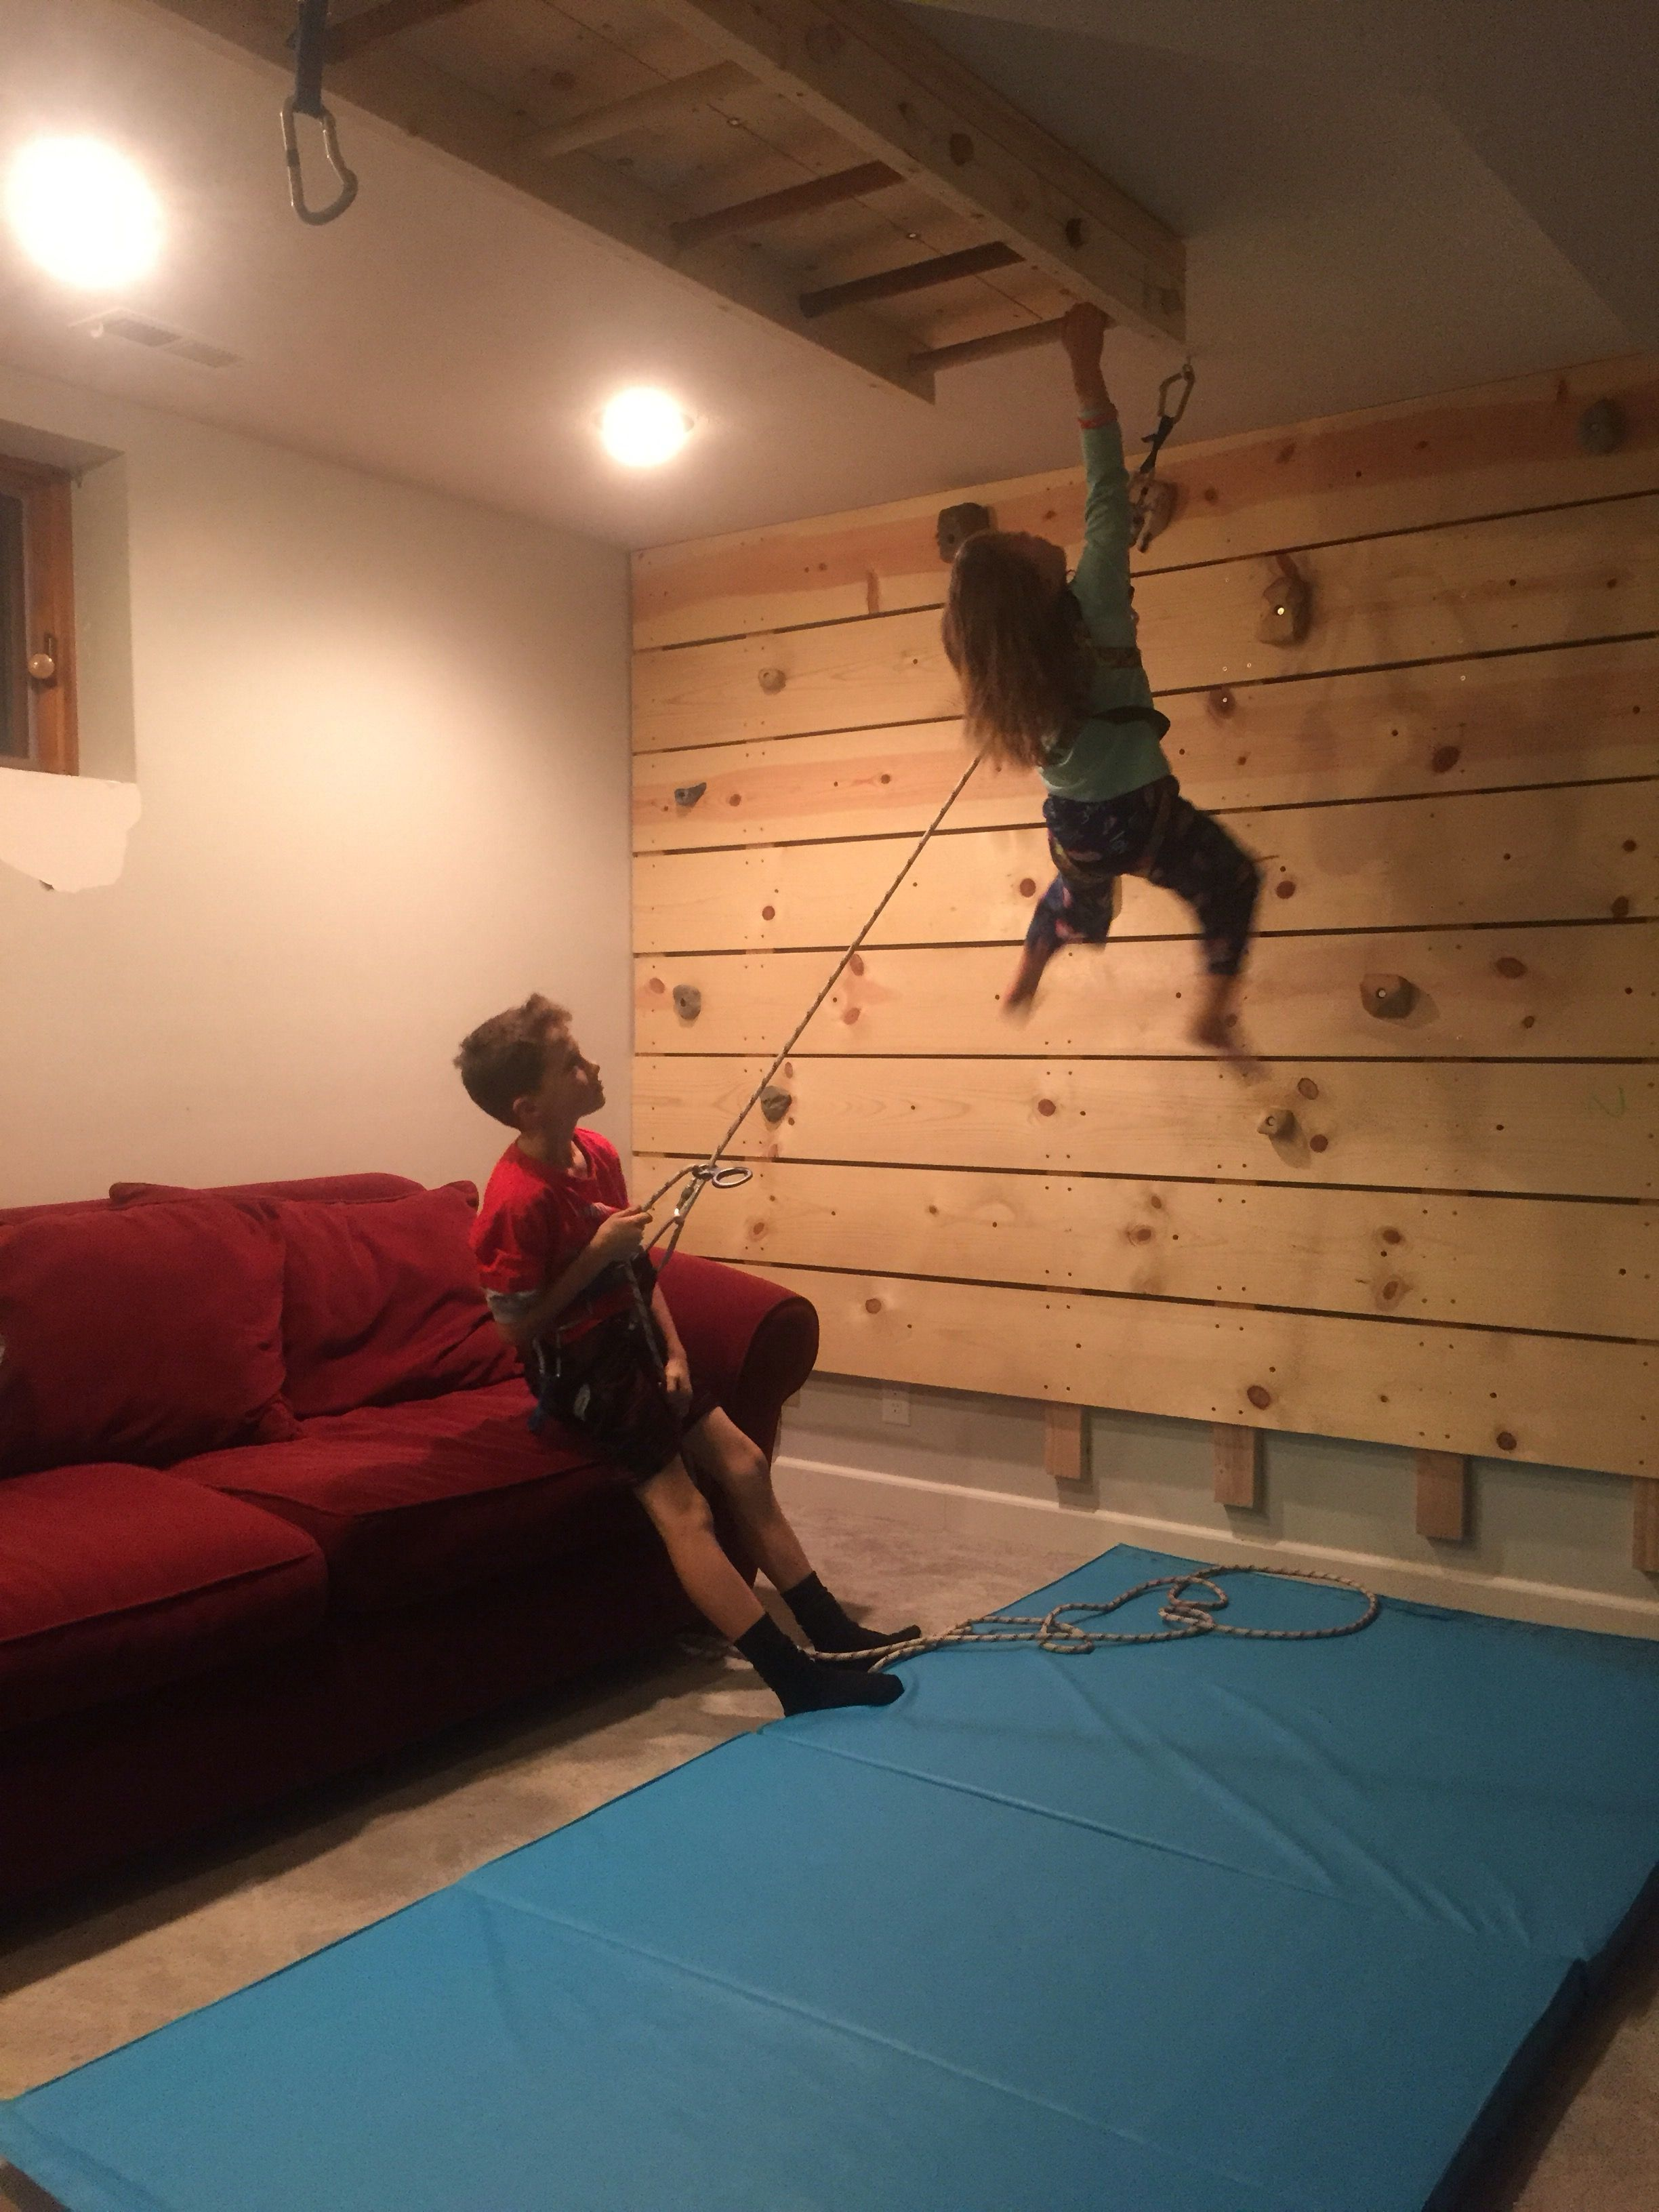 Basement Ideas For Kids Diy Basement Rock Climbing Wall On Belay Dad Vs Wild